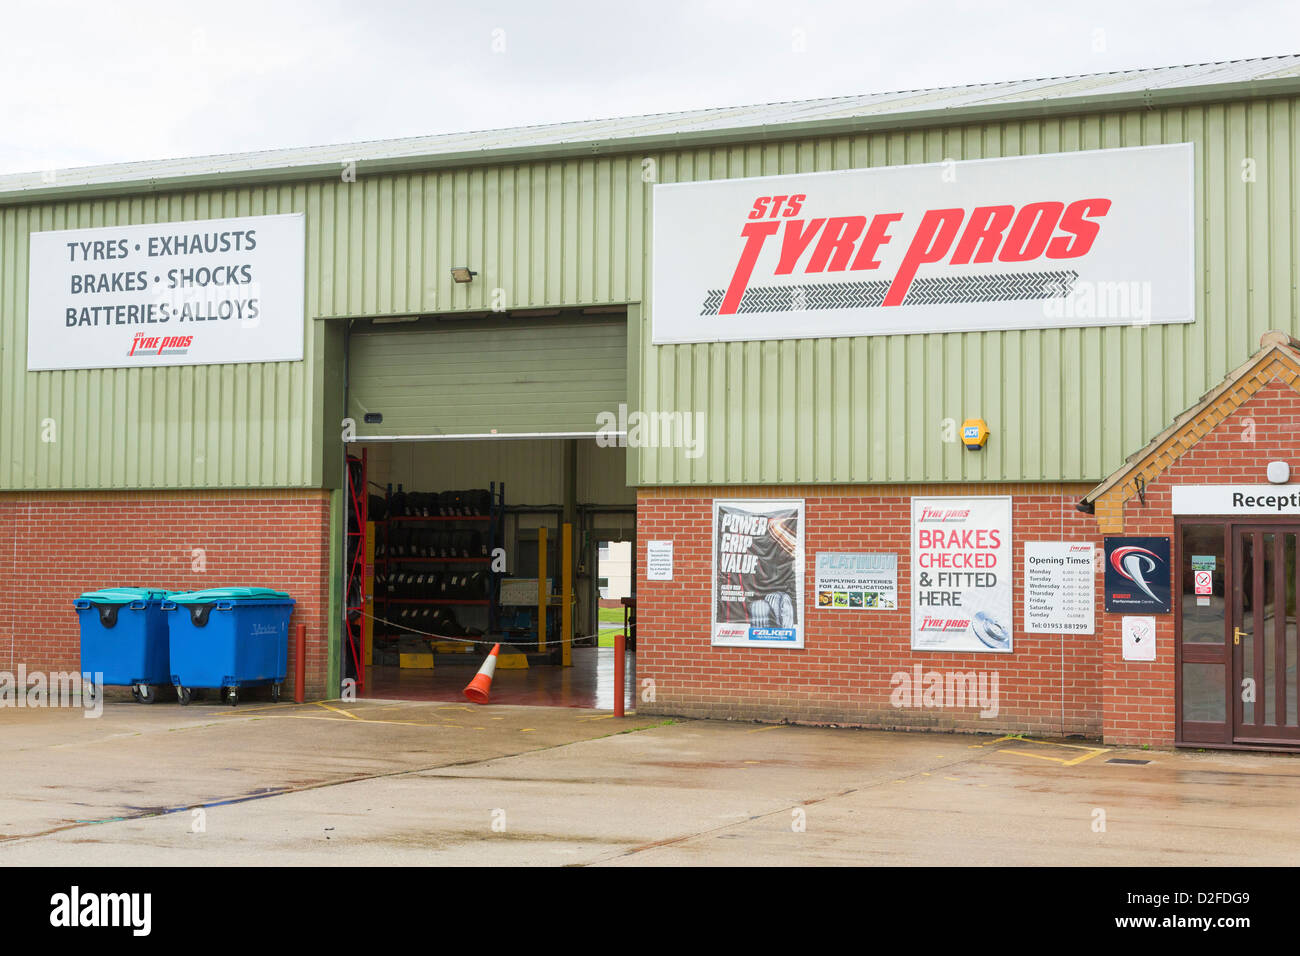 STS Tyre Pros - tyre and exhaust fitting garage workshop - Stock Image